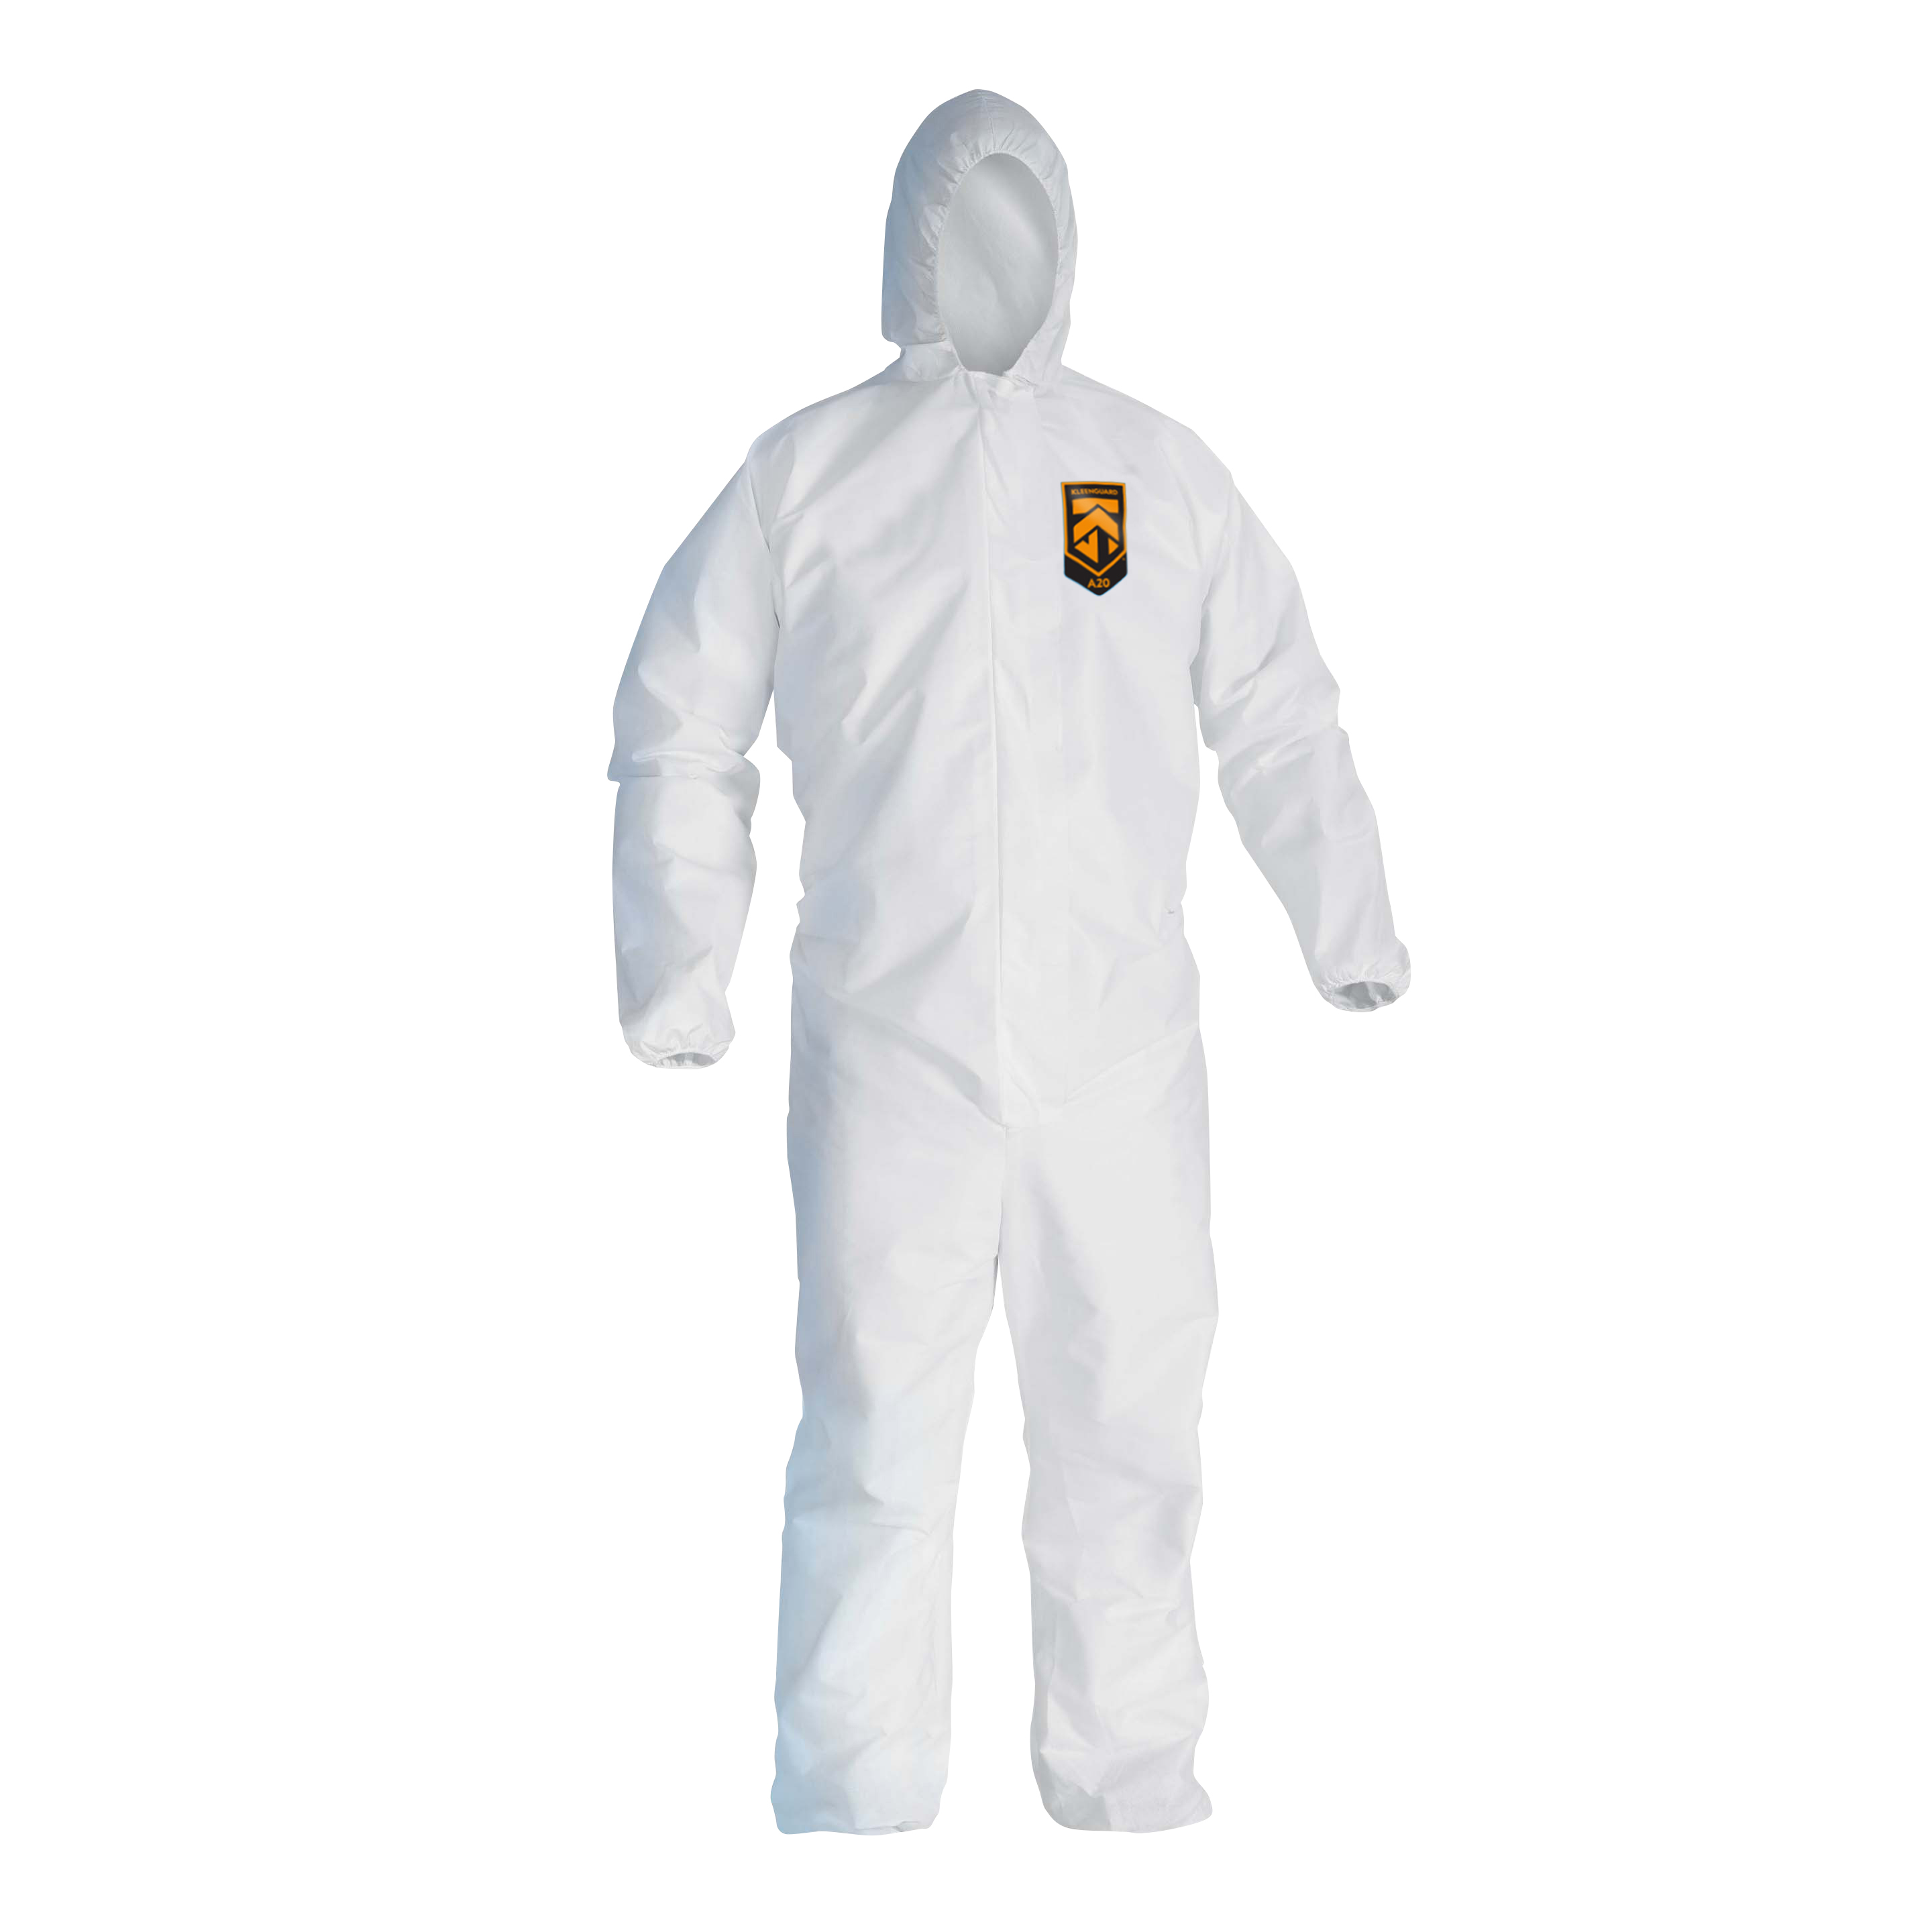 Liquid & Particle Protection Coveralls